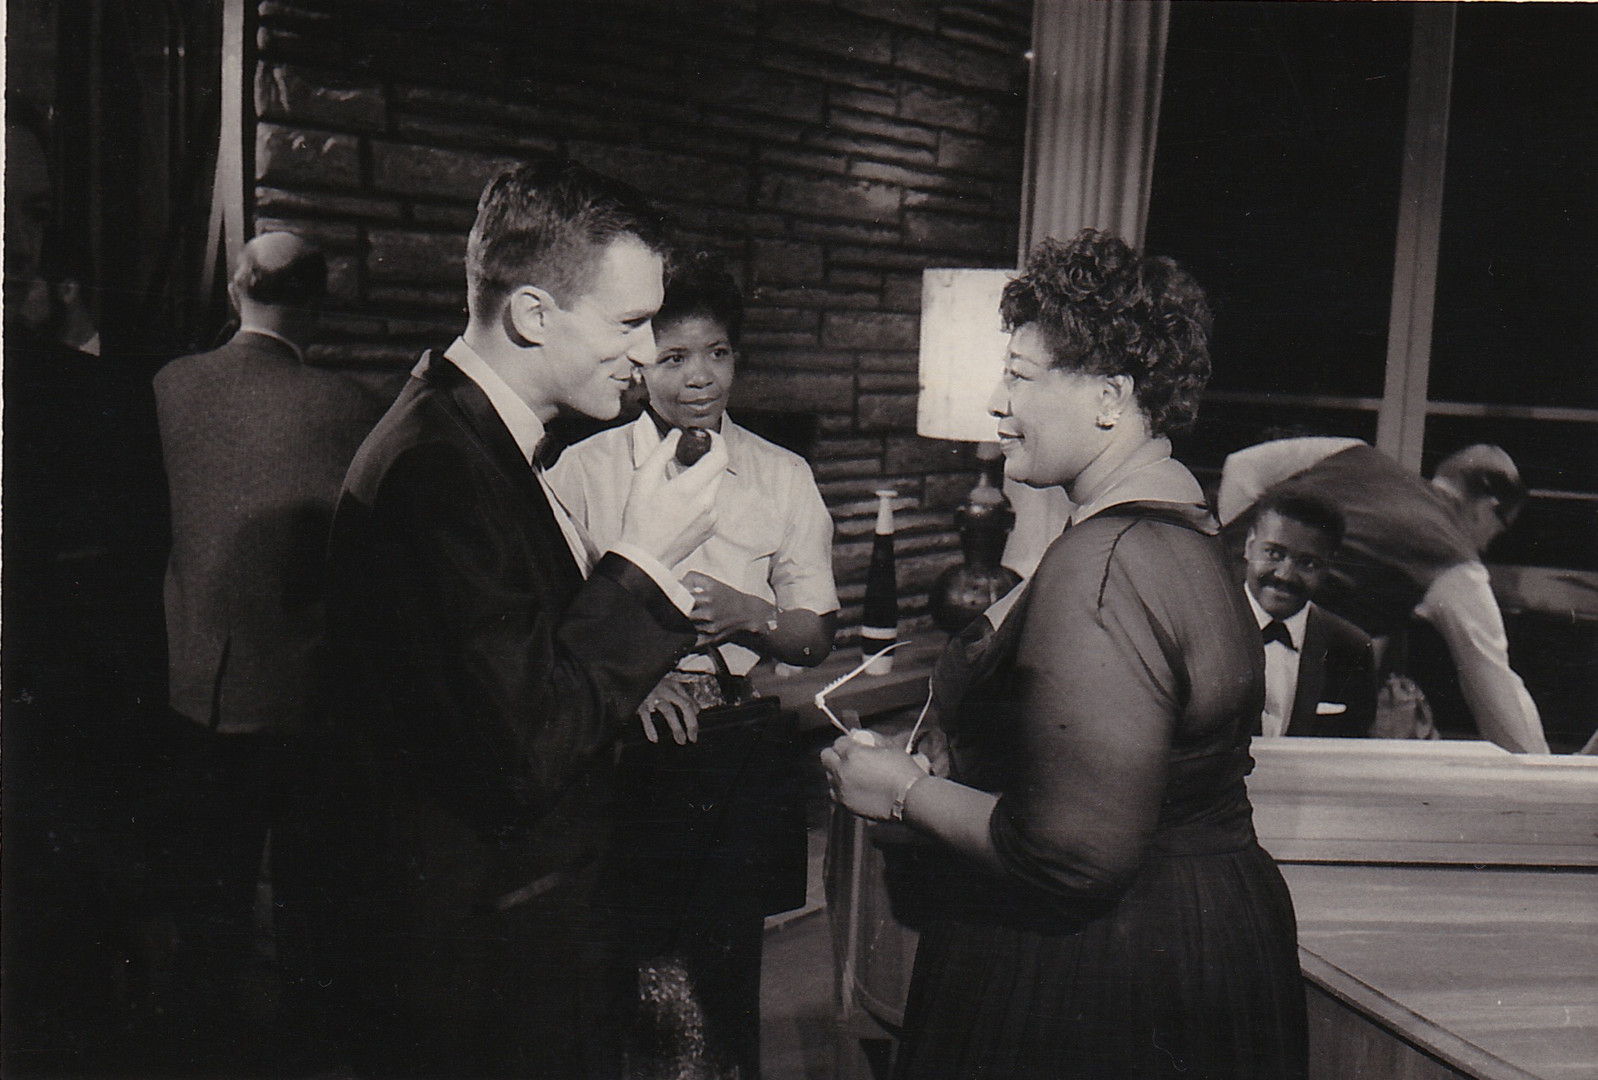 Hef and Ella Fitzgerald on the Playboy's Penthouse set in 1968